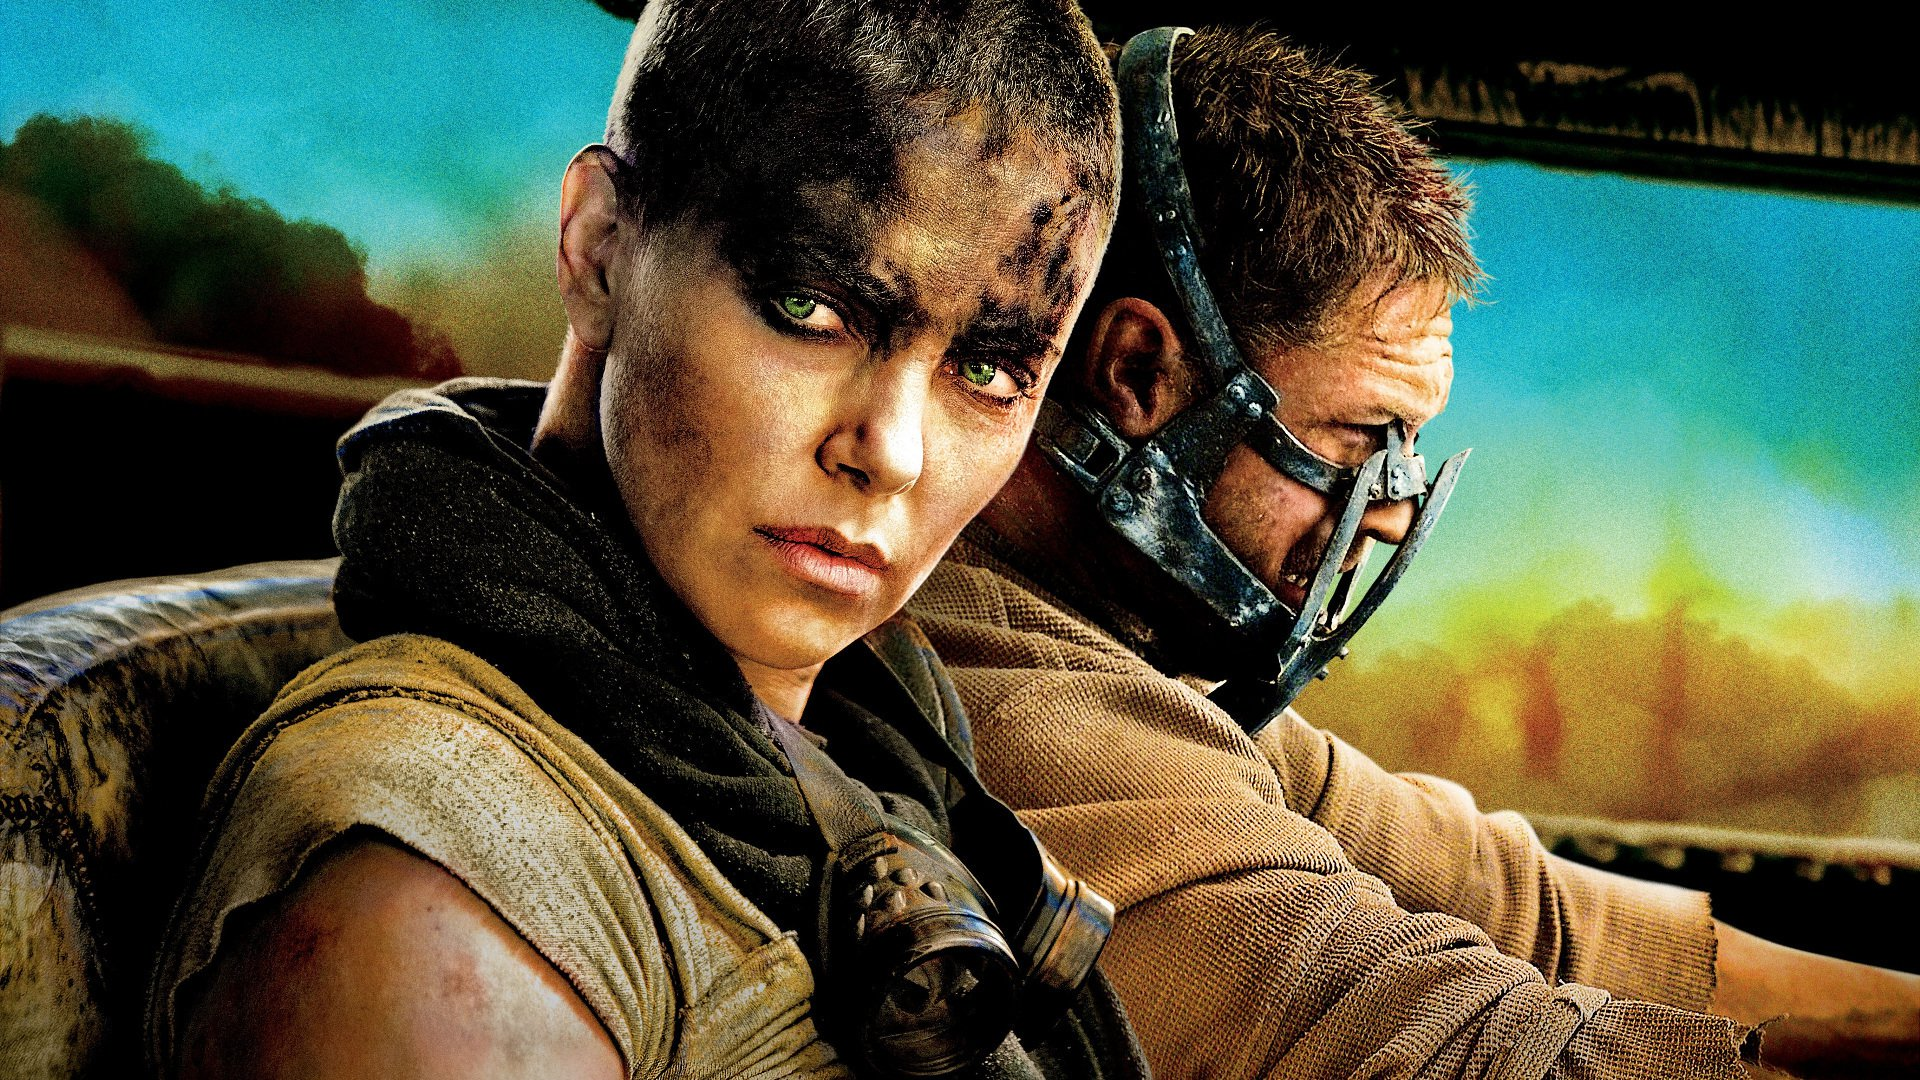 Regarder Mad Max: Fury Road en streaming gratuit